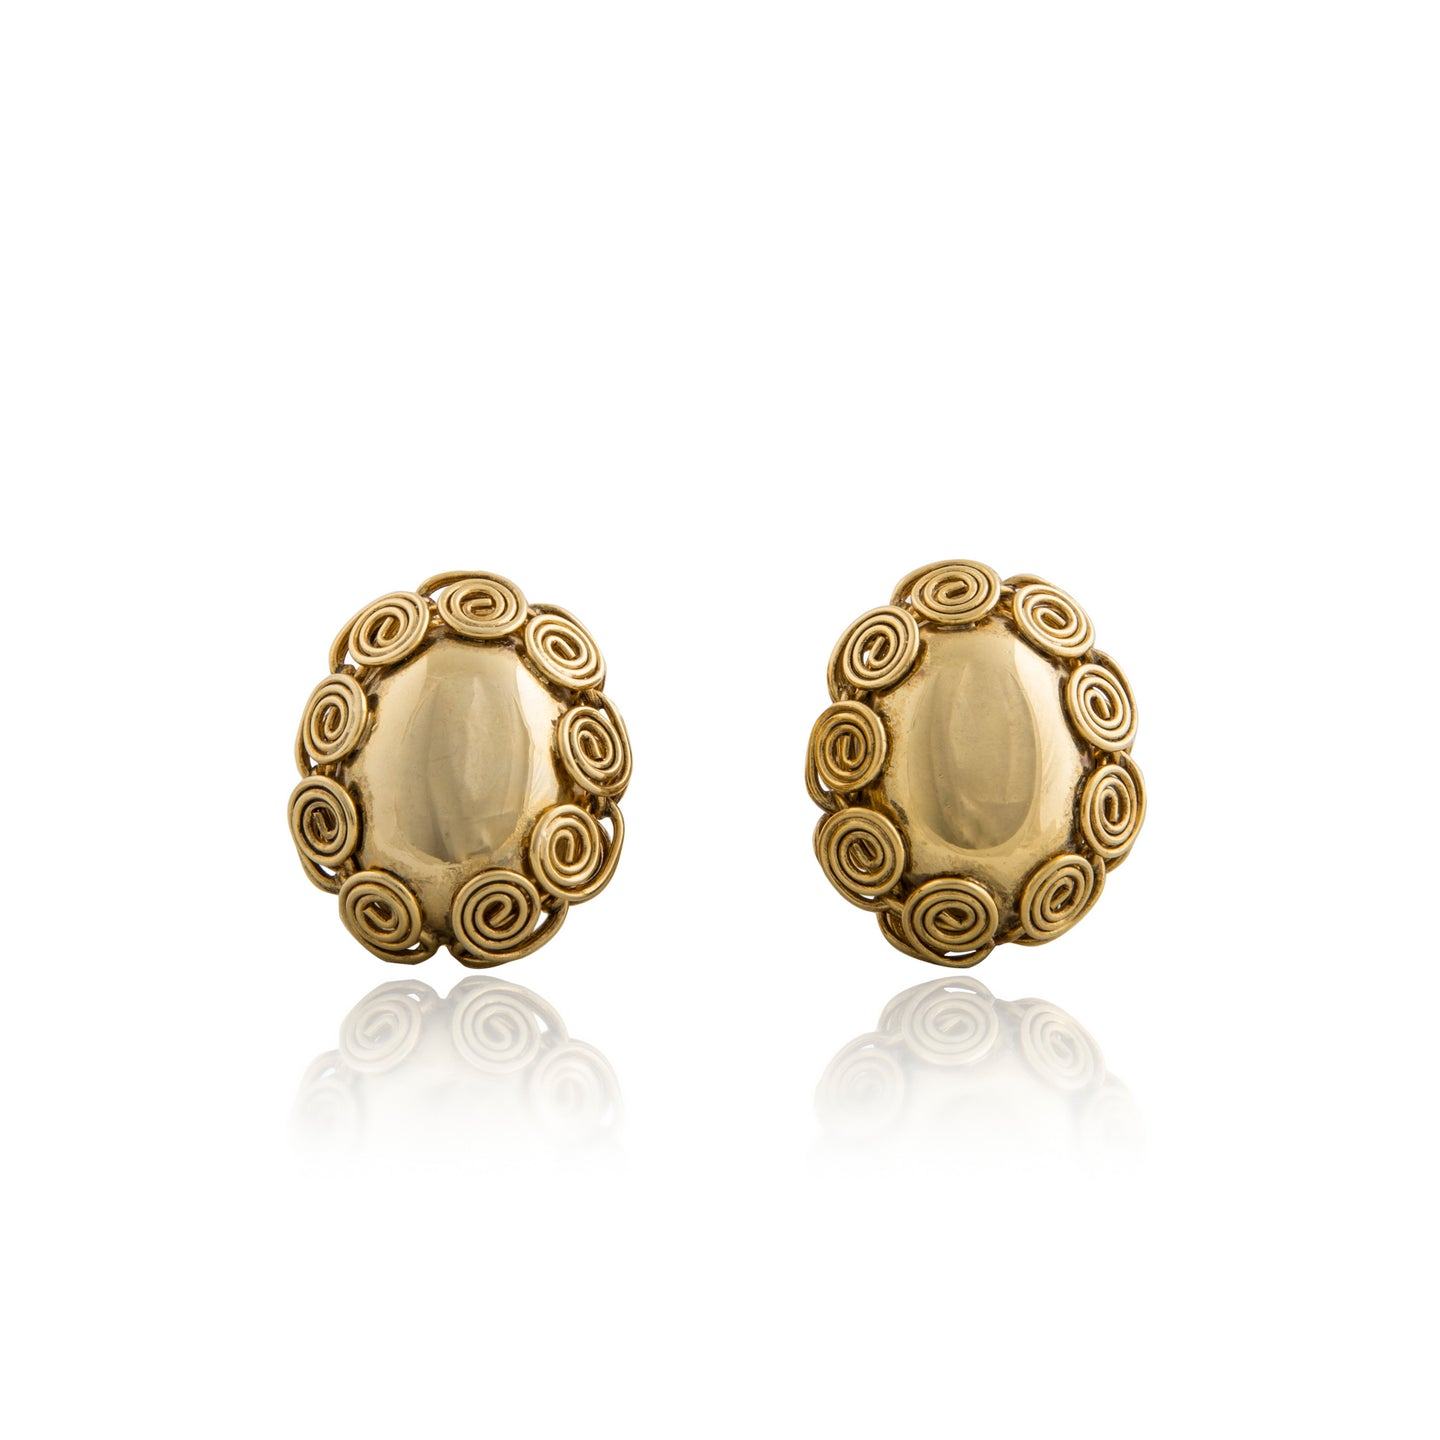 Vintage Coiled Gold Earrings